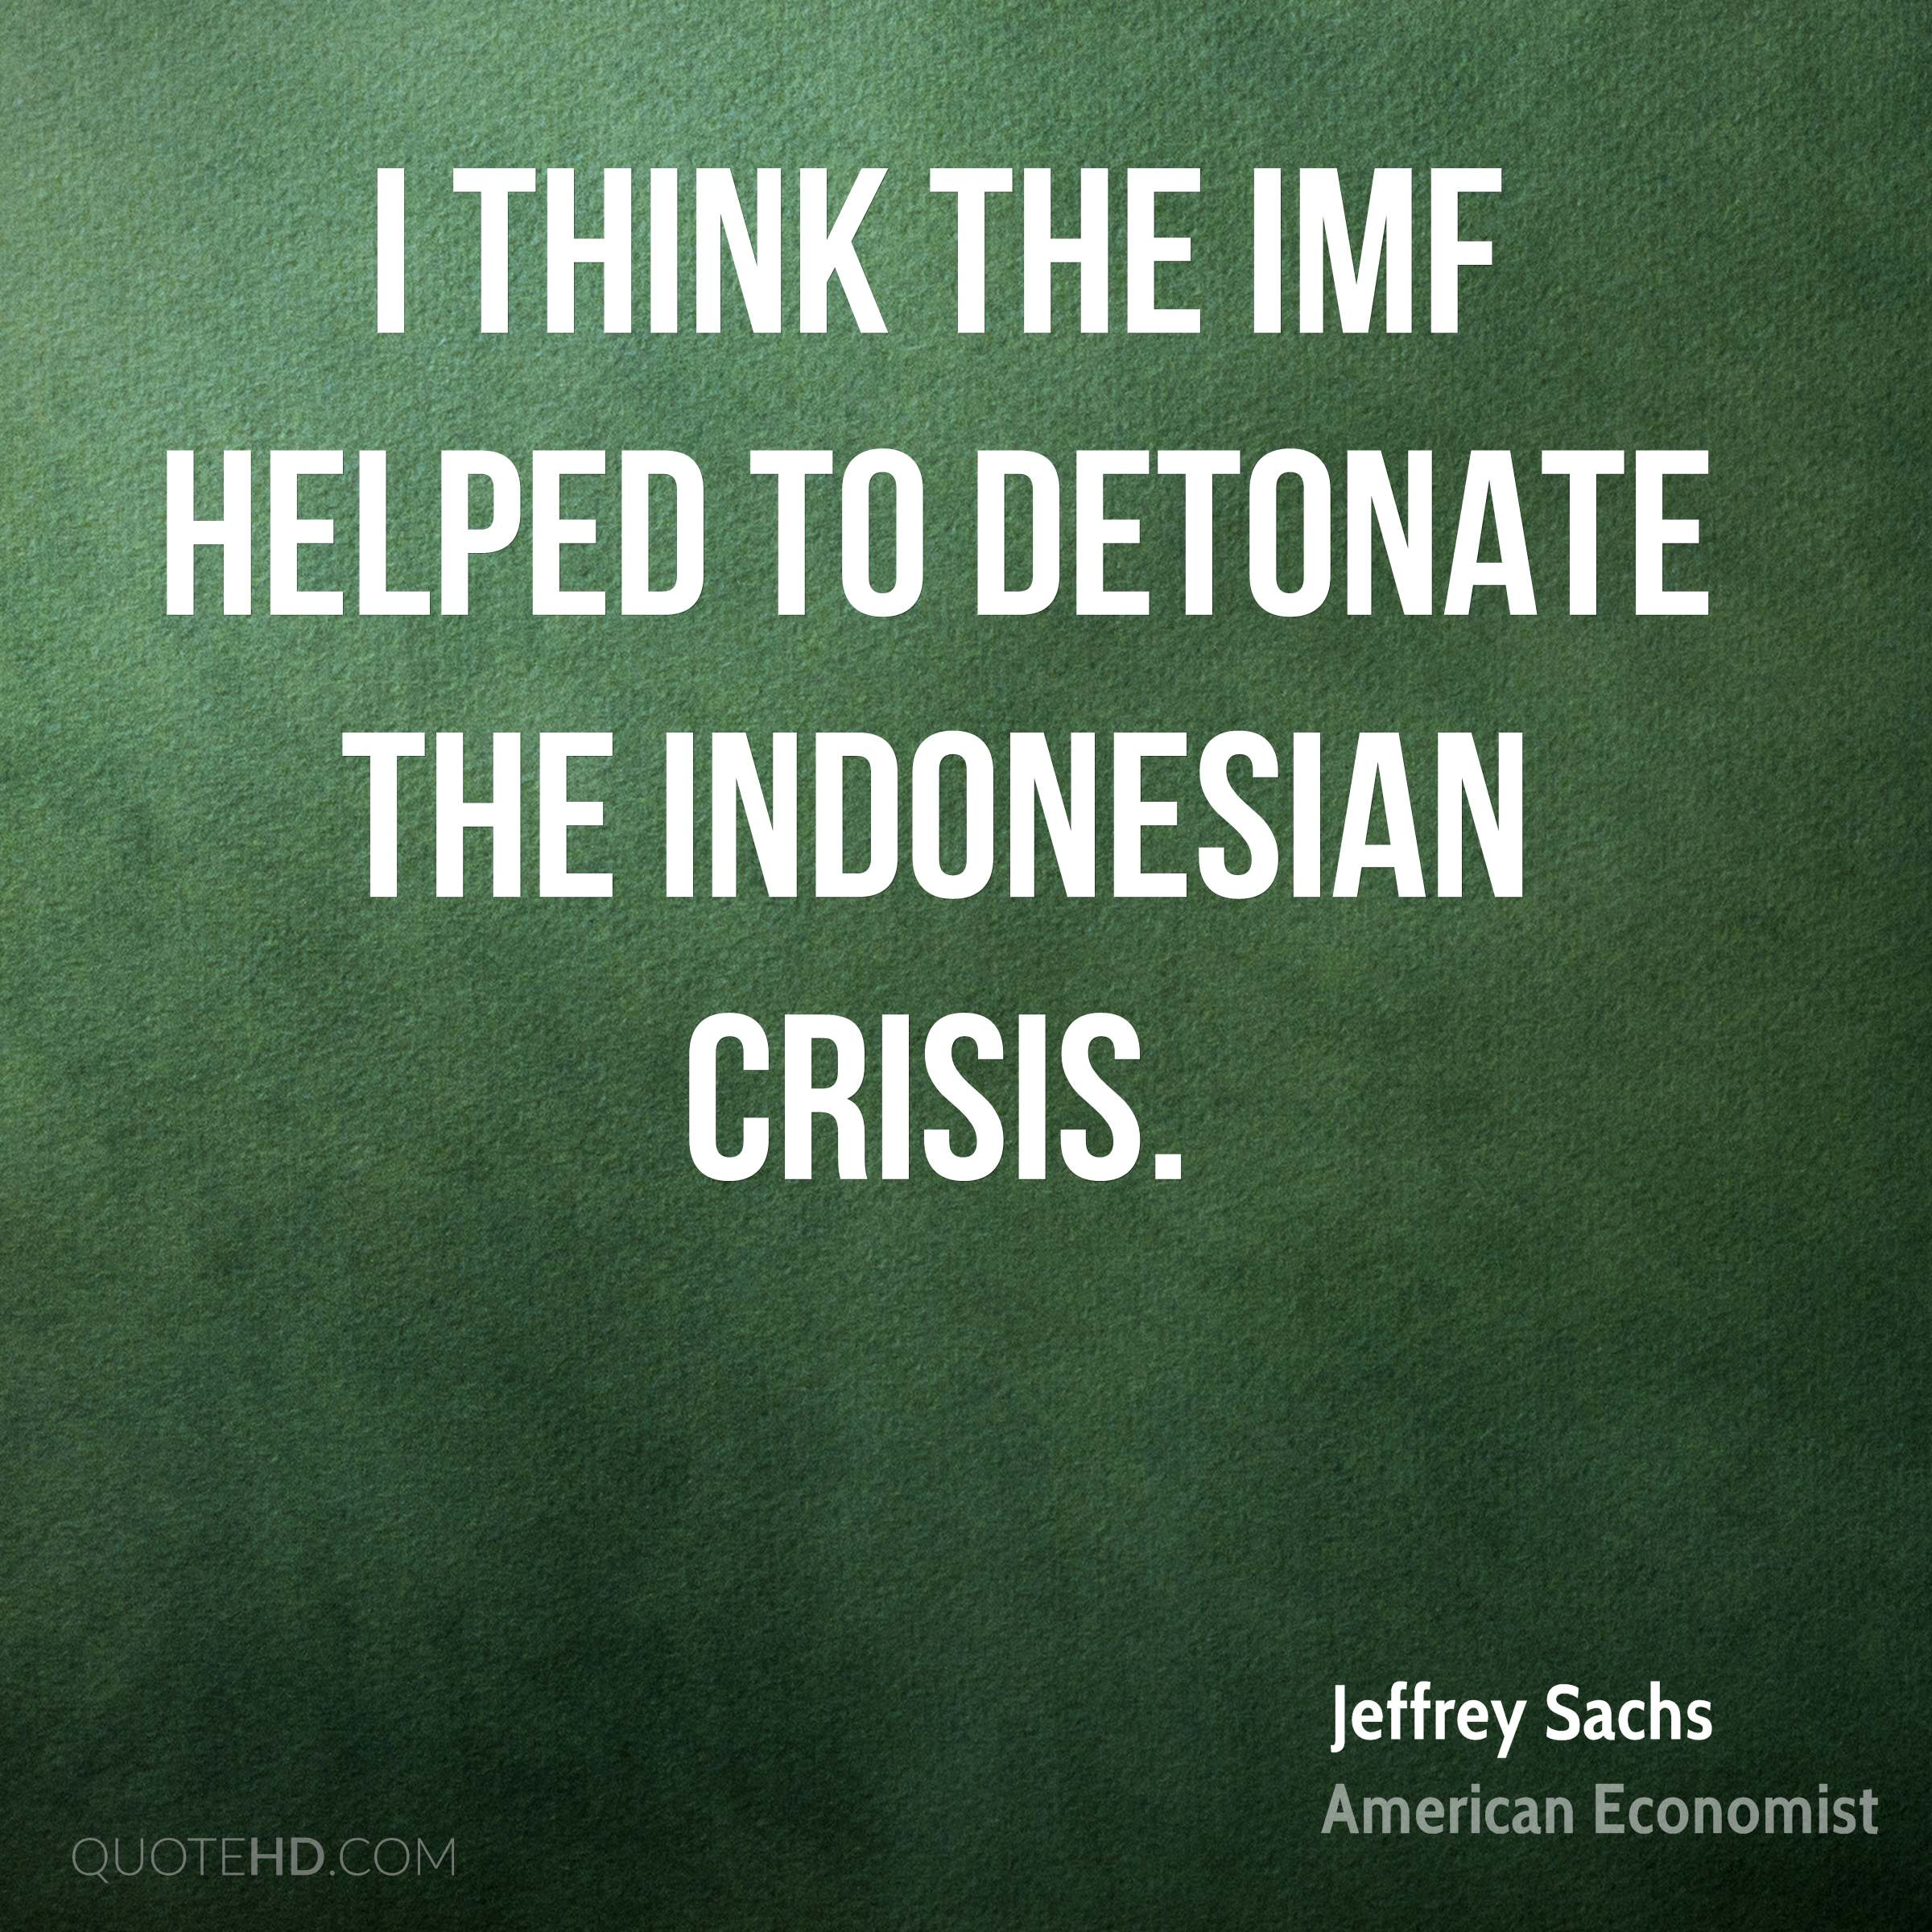 I think the IMF helped to detonate the Indonesian crisis.